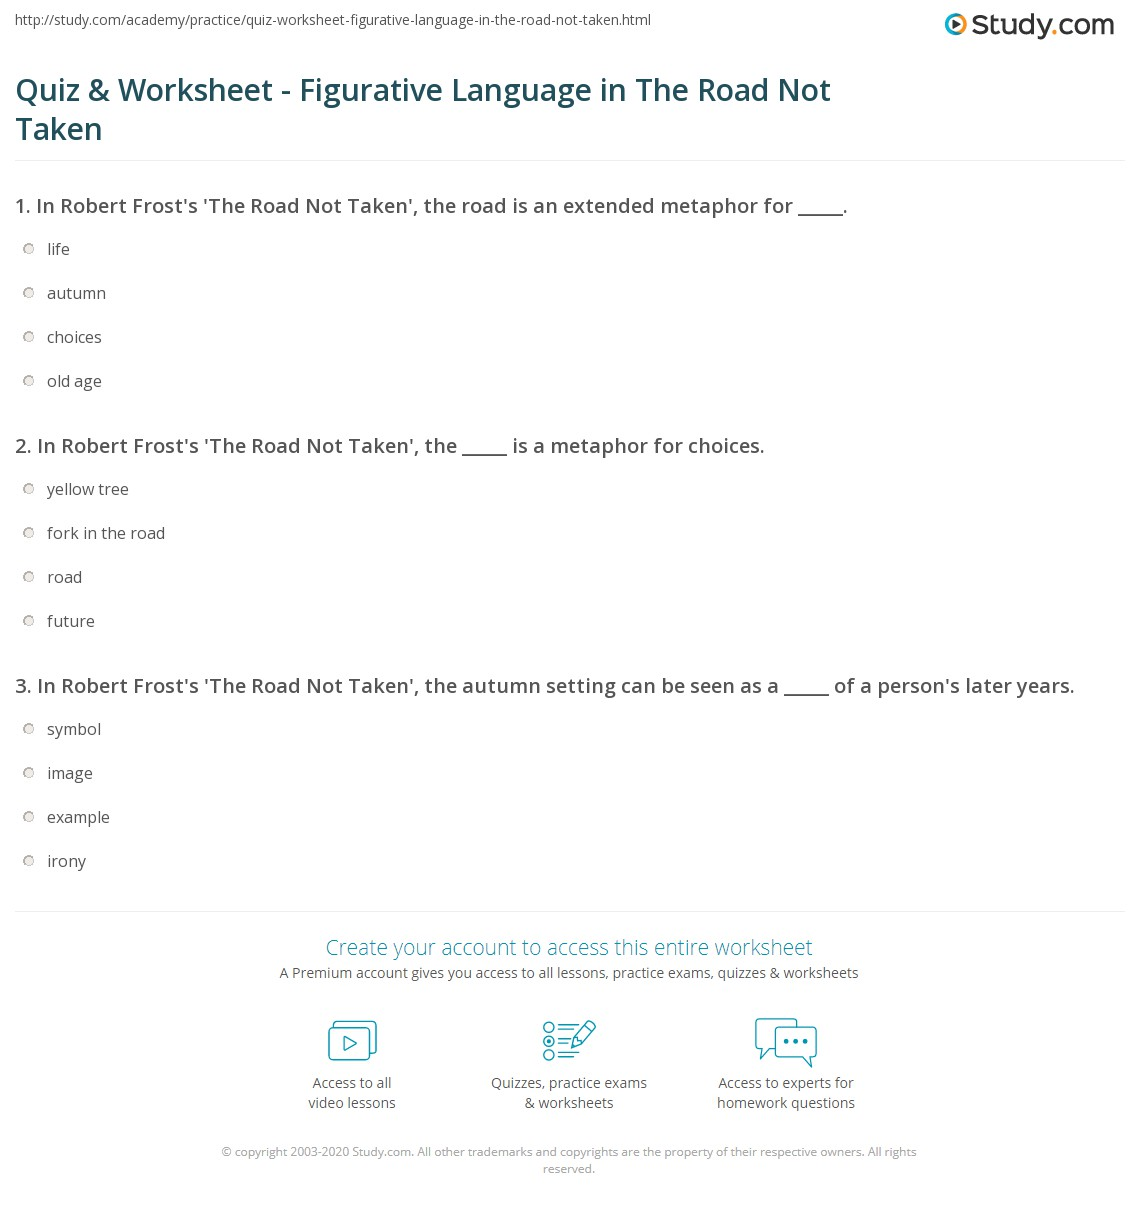 quiz worksheet figurative language in the road not taken in robert frost s the road not taken the is a metaphor for choices